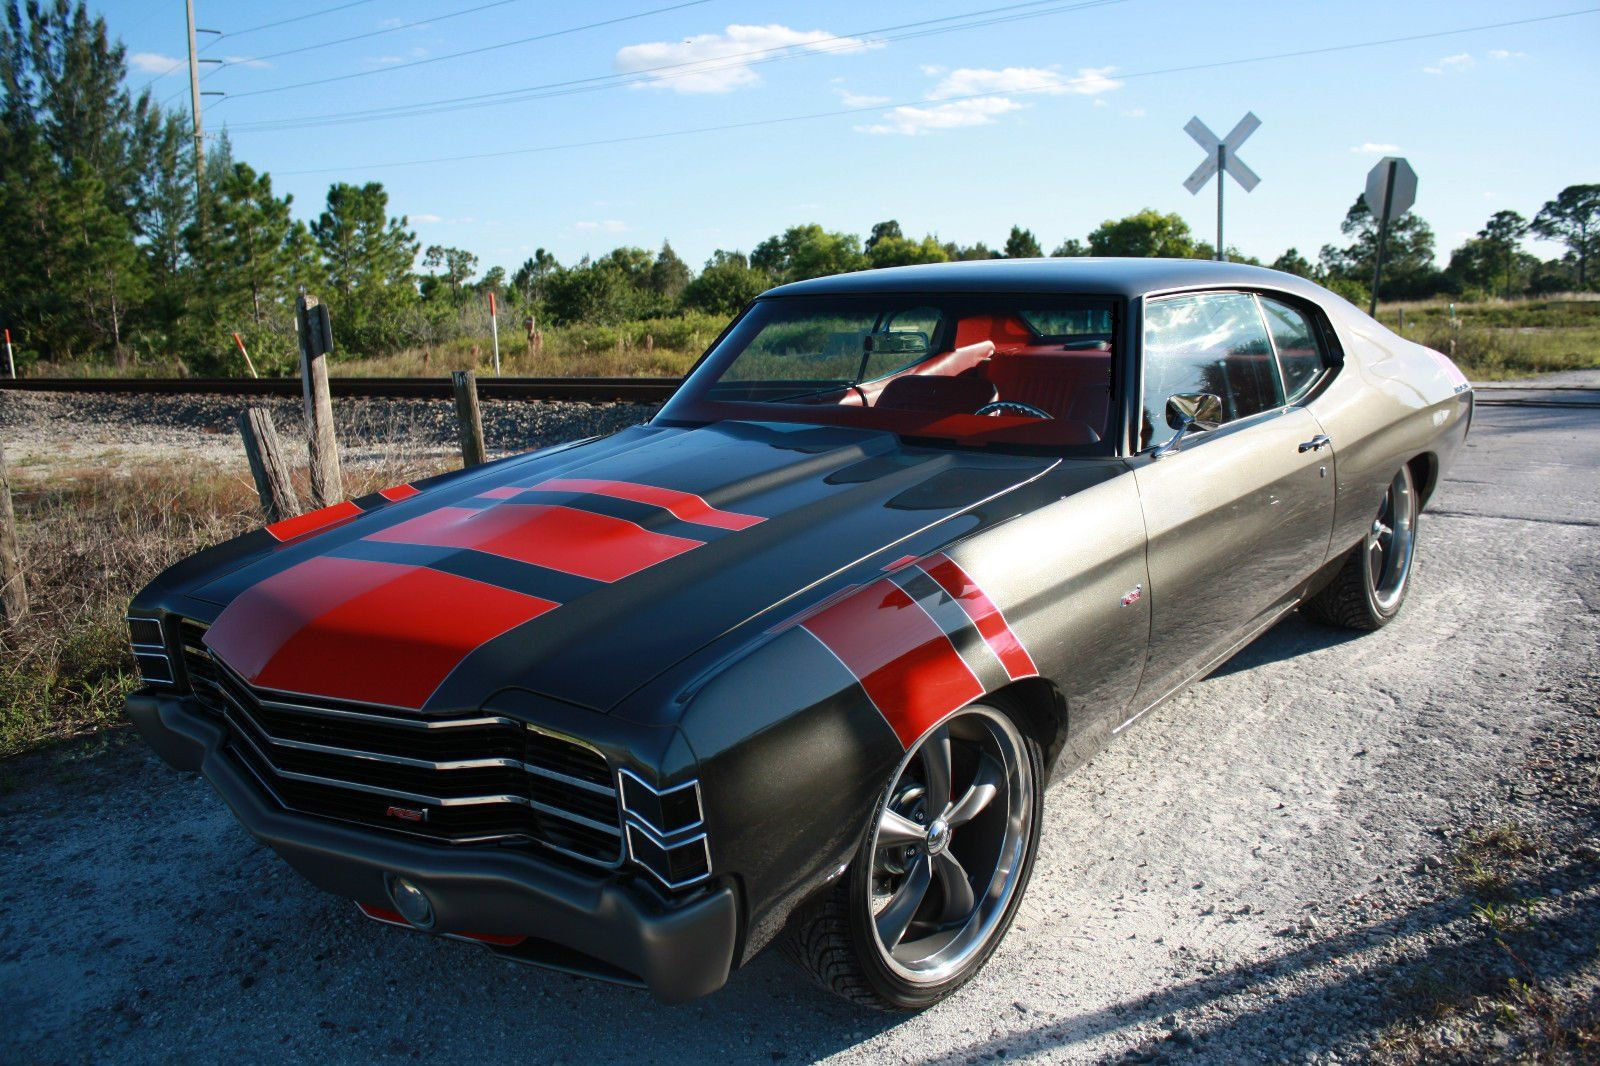 Muscle Cars For Sale Kansas City Mo